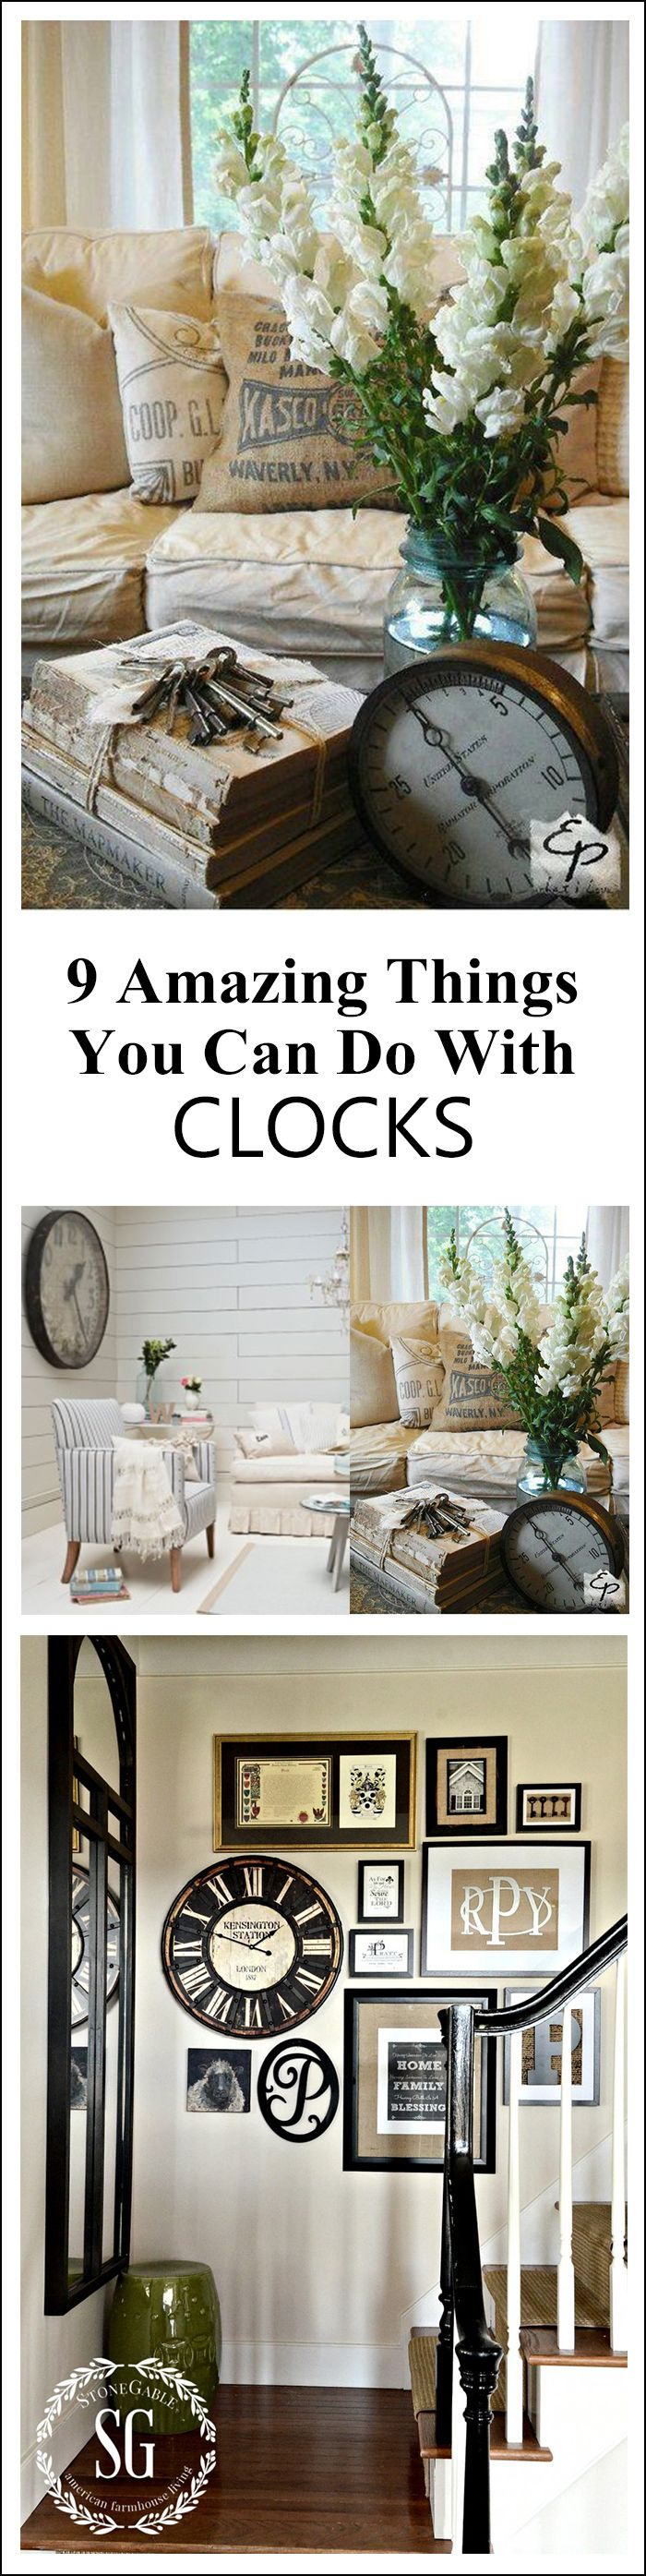 9 Amazing Things You Can Do With Clocks